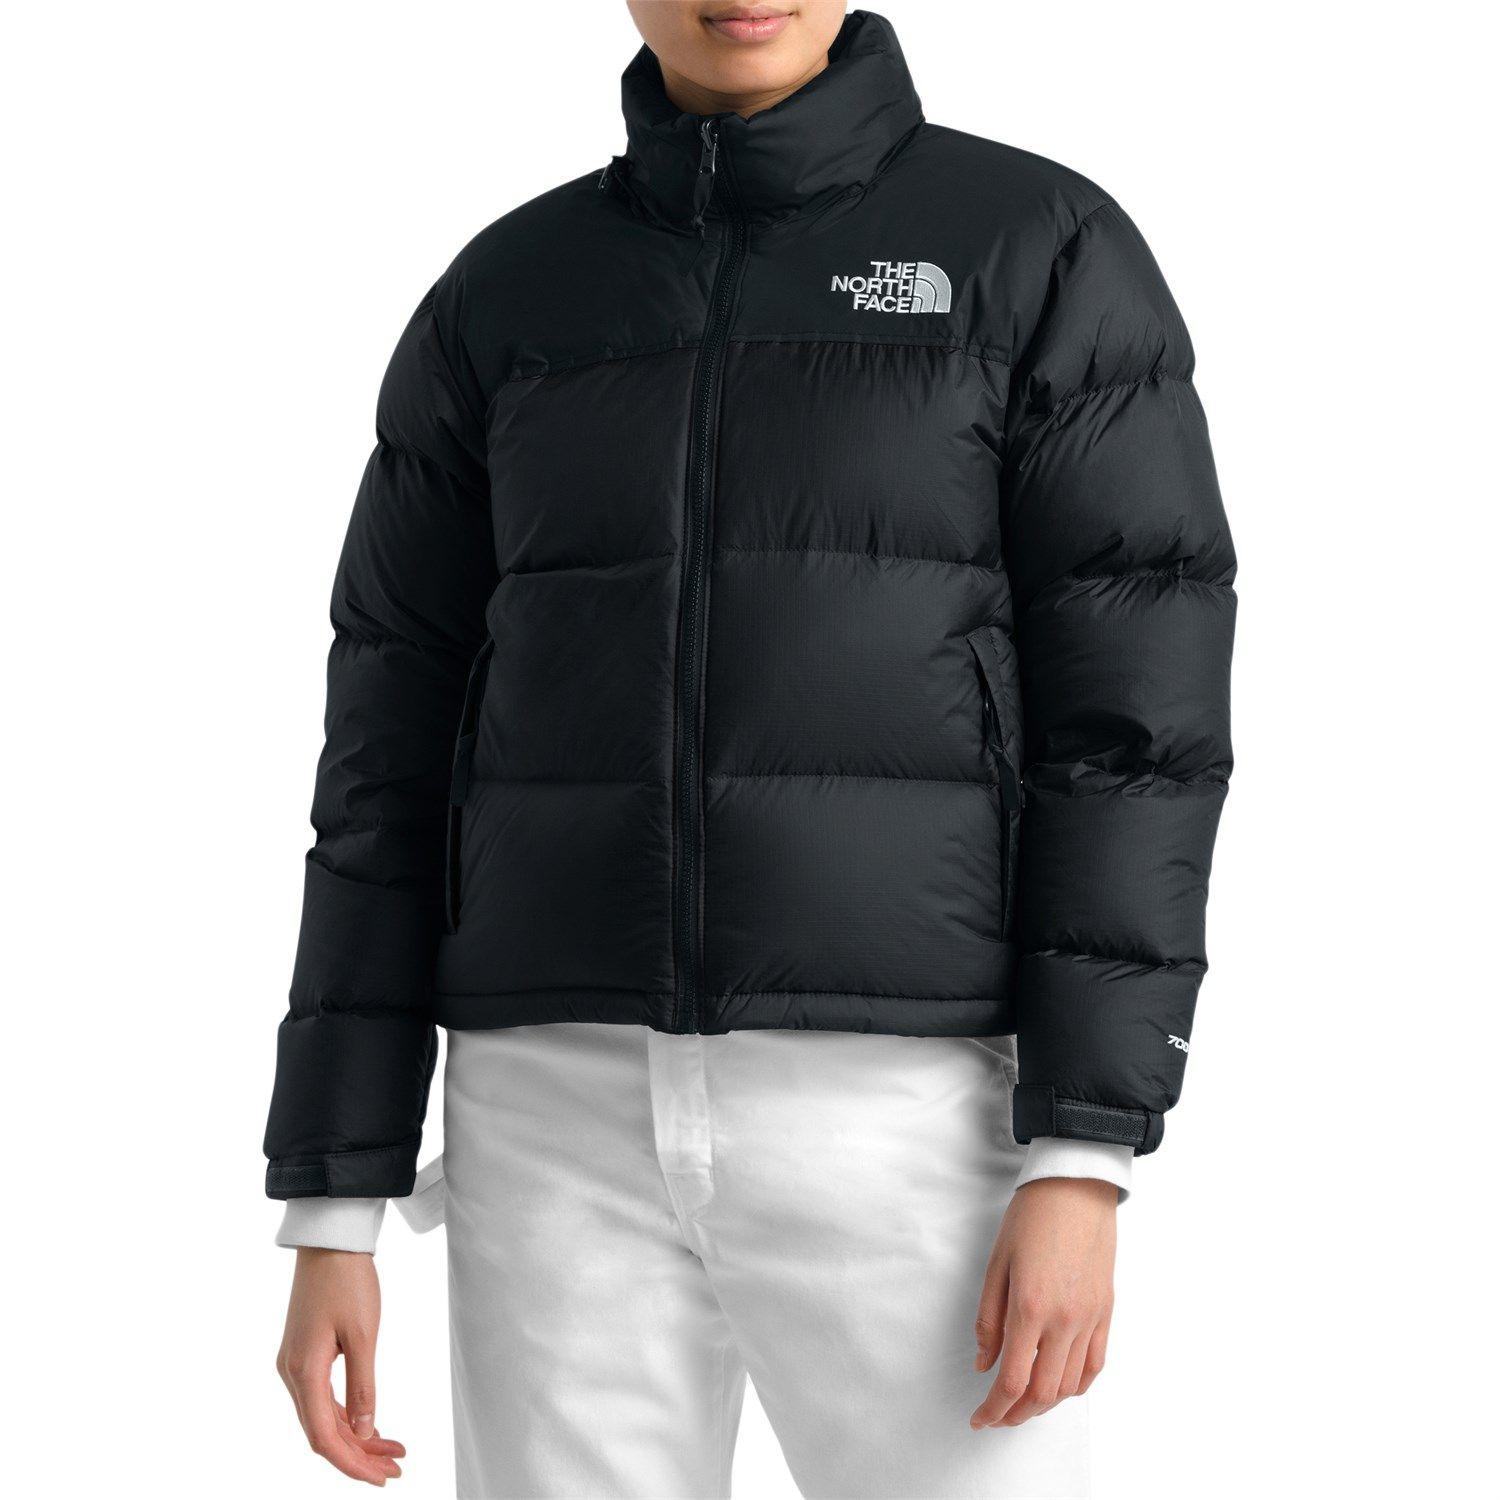 The North Face 1996 Retro Nuptse Jacket Women's | North